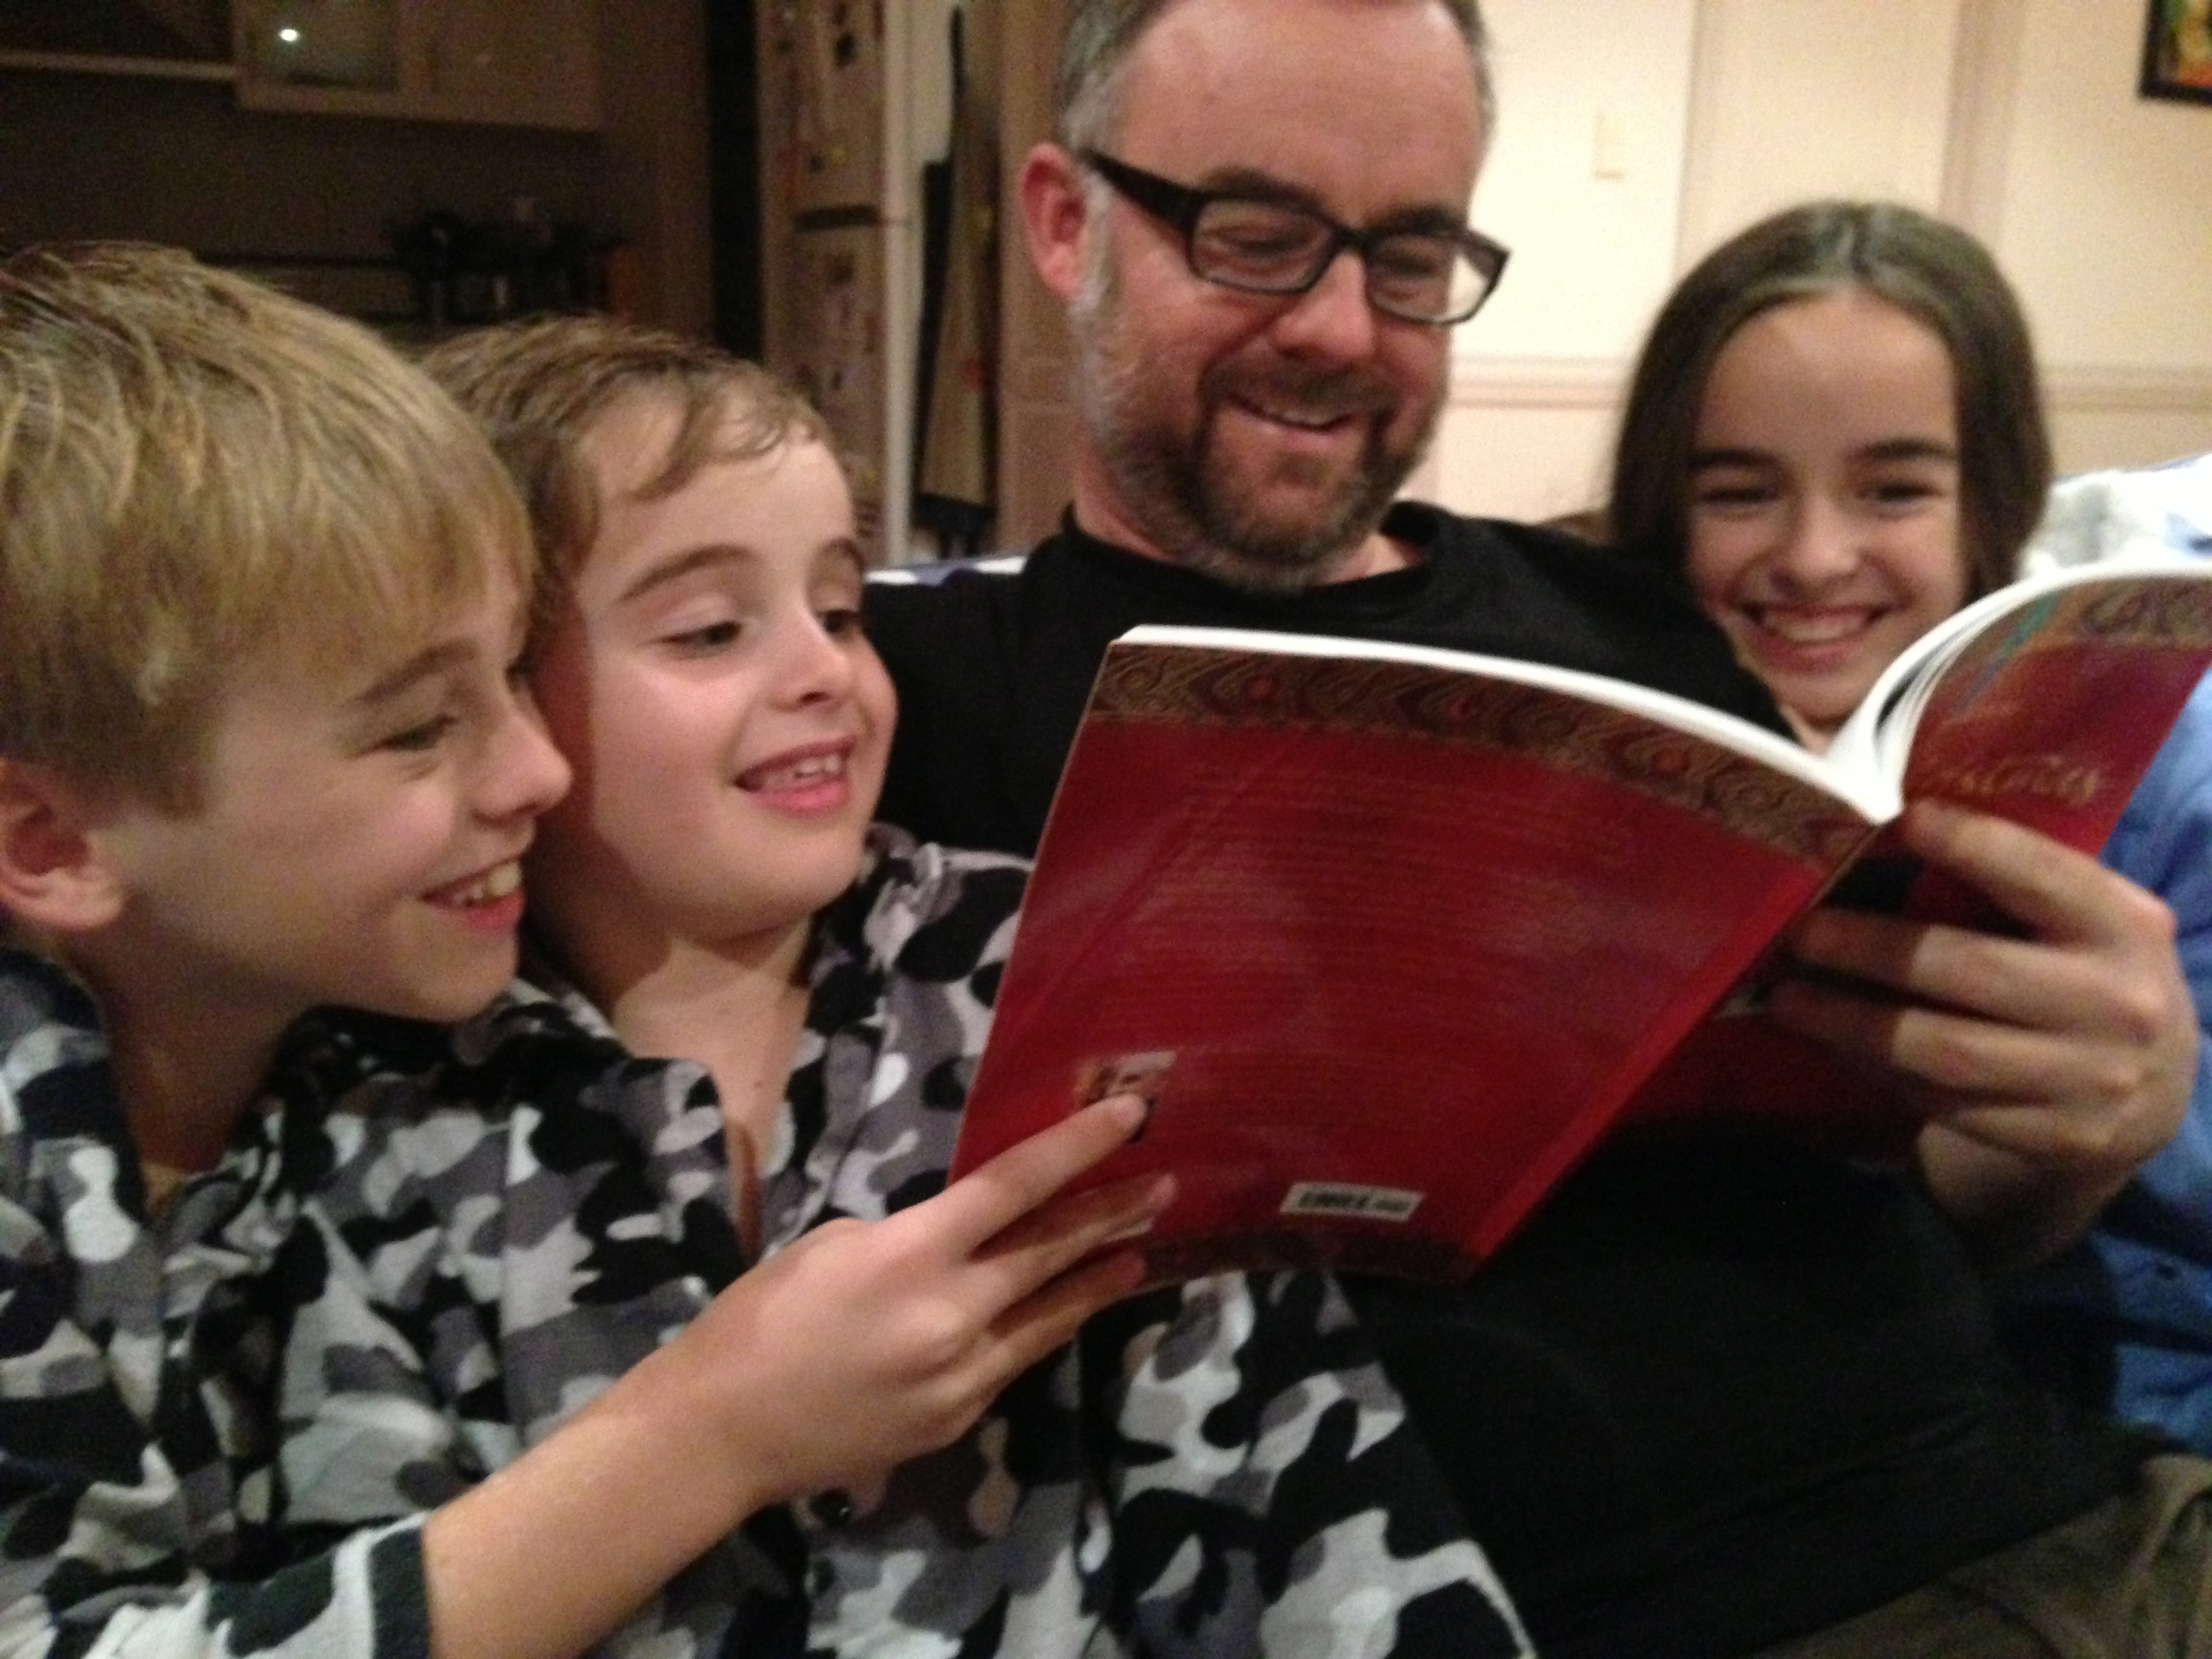 Dan reading J.R.R Tolkien's 'Letter from Father Christmas' to three of his children.